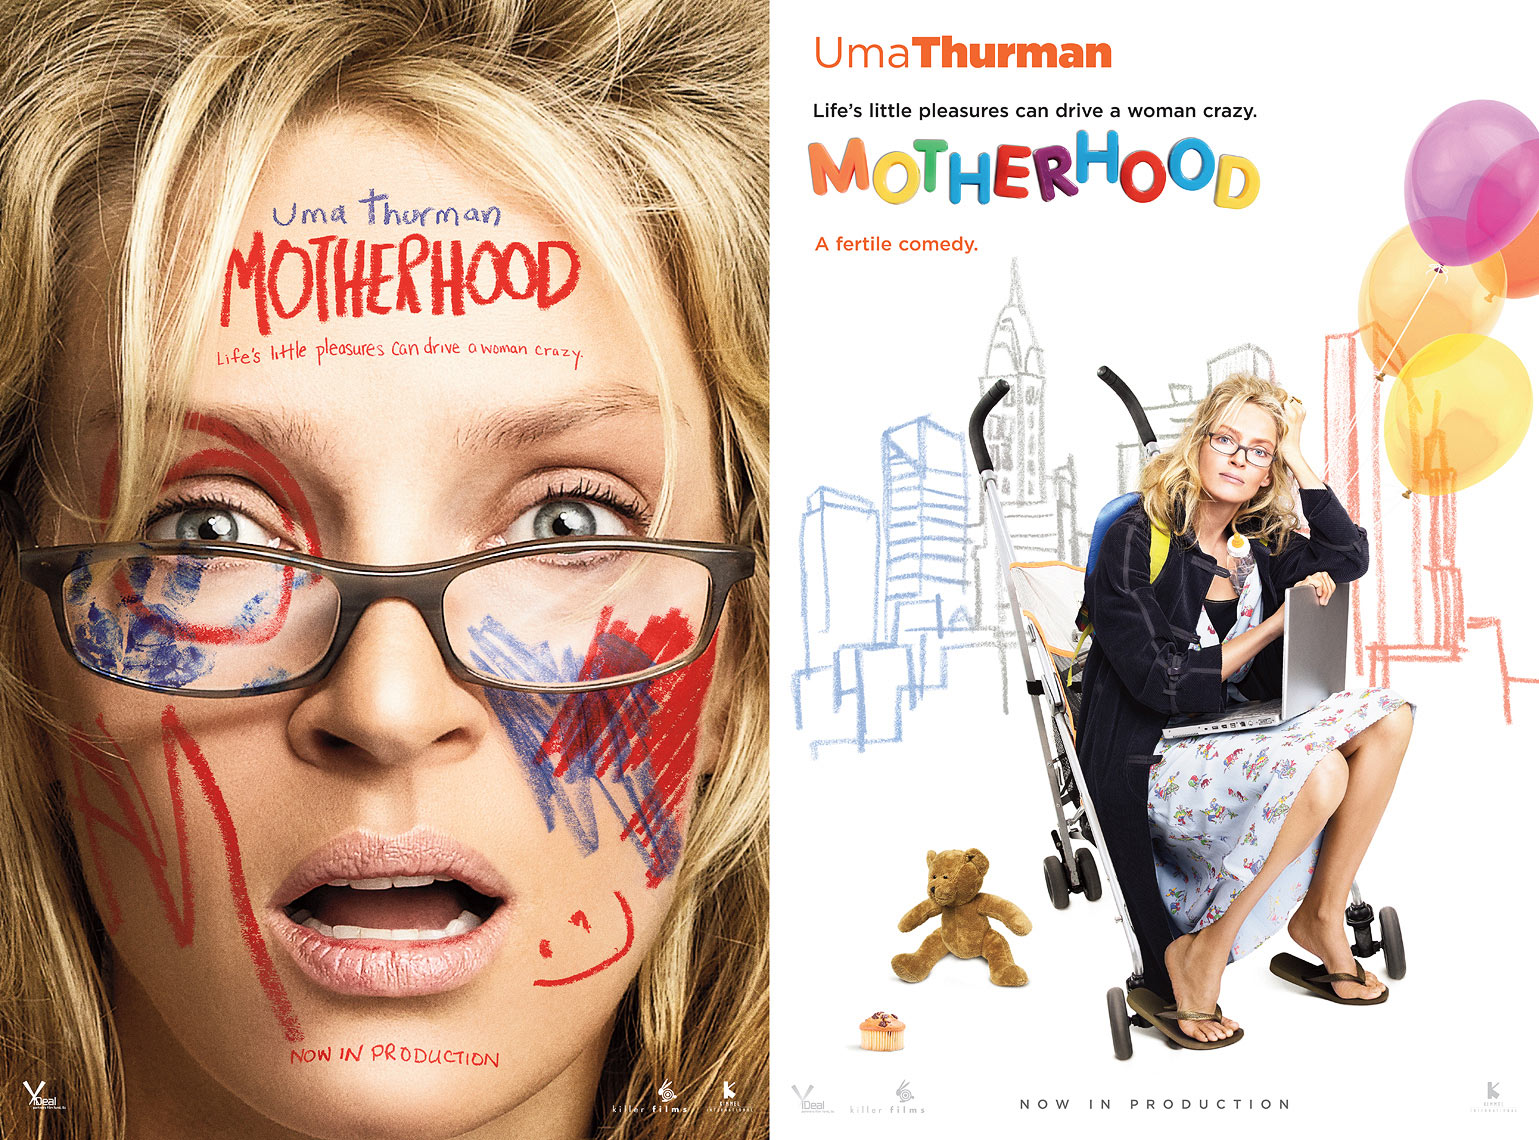 Uma Thurman - Motherhood